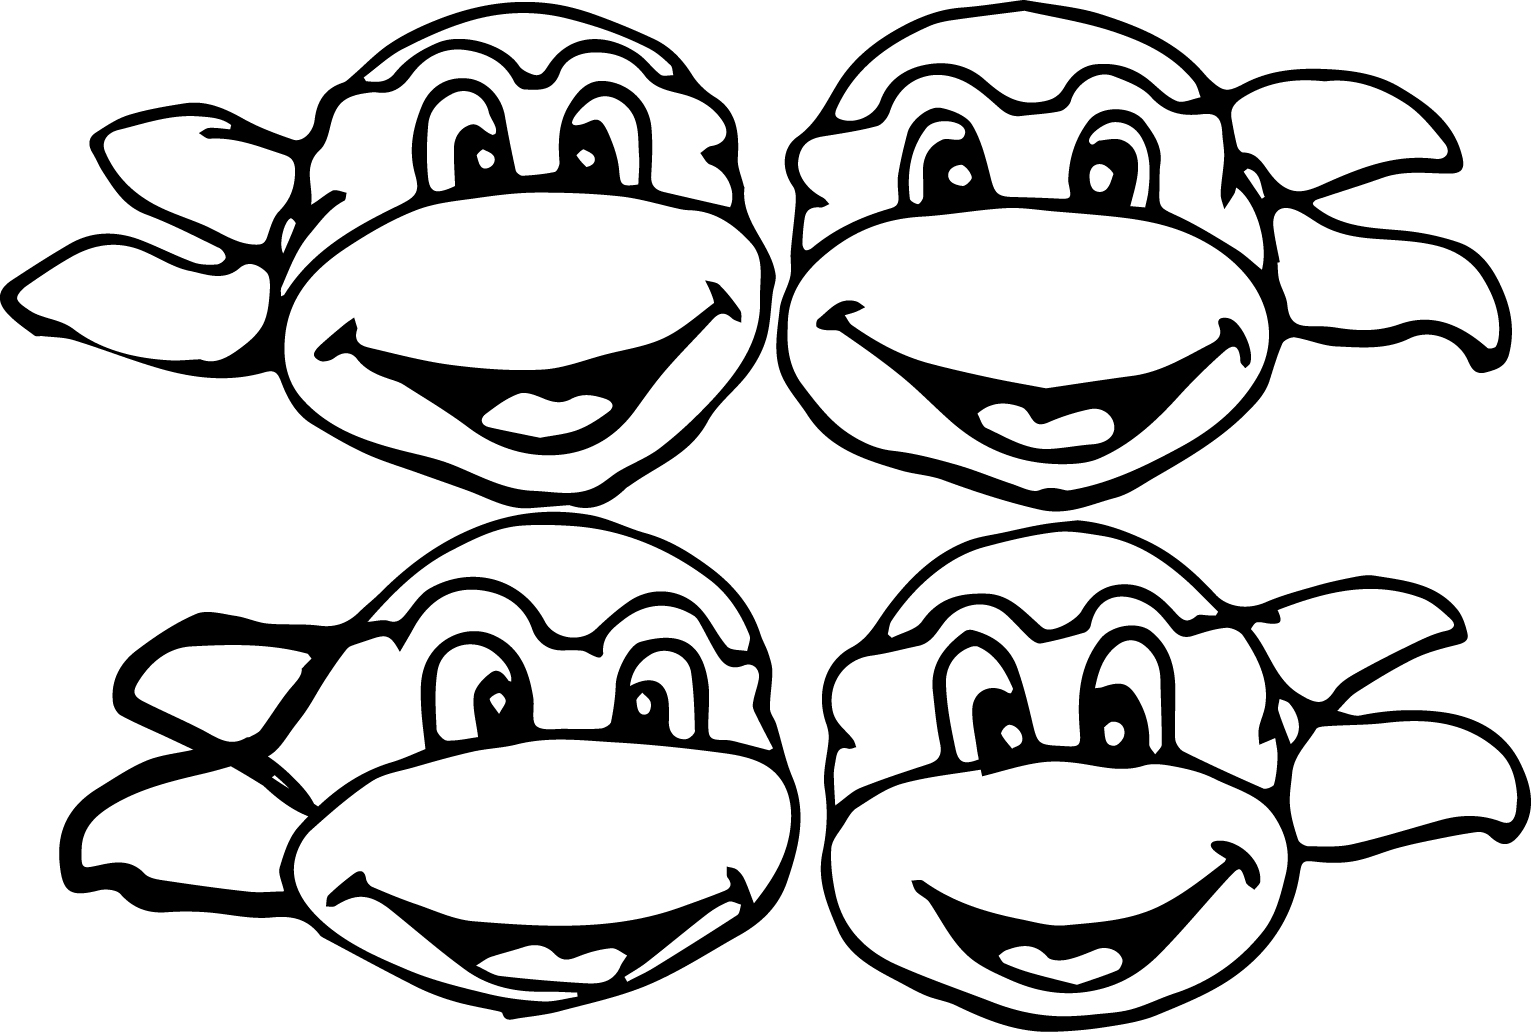 coloring picture turtle turtles to print for free turtles kids coloring pages picture turtle coloring